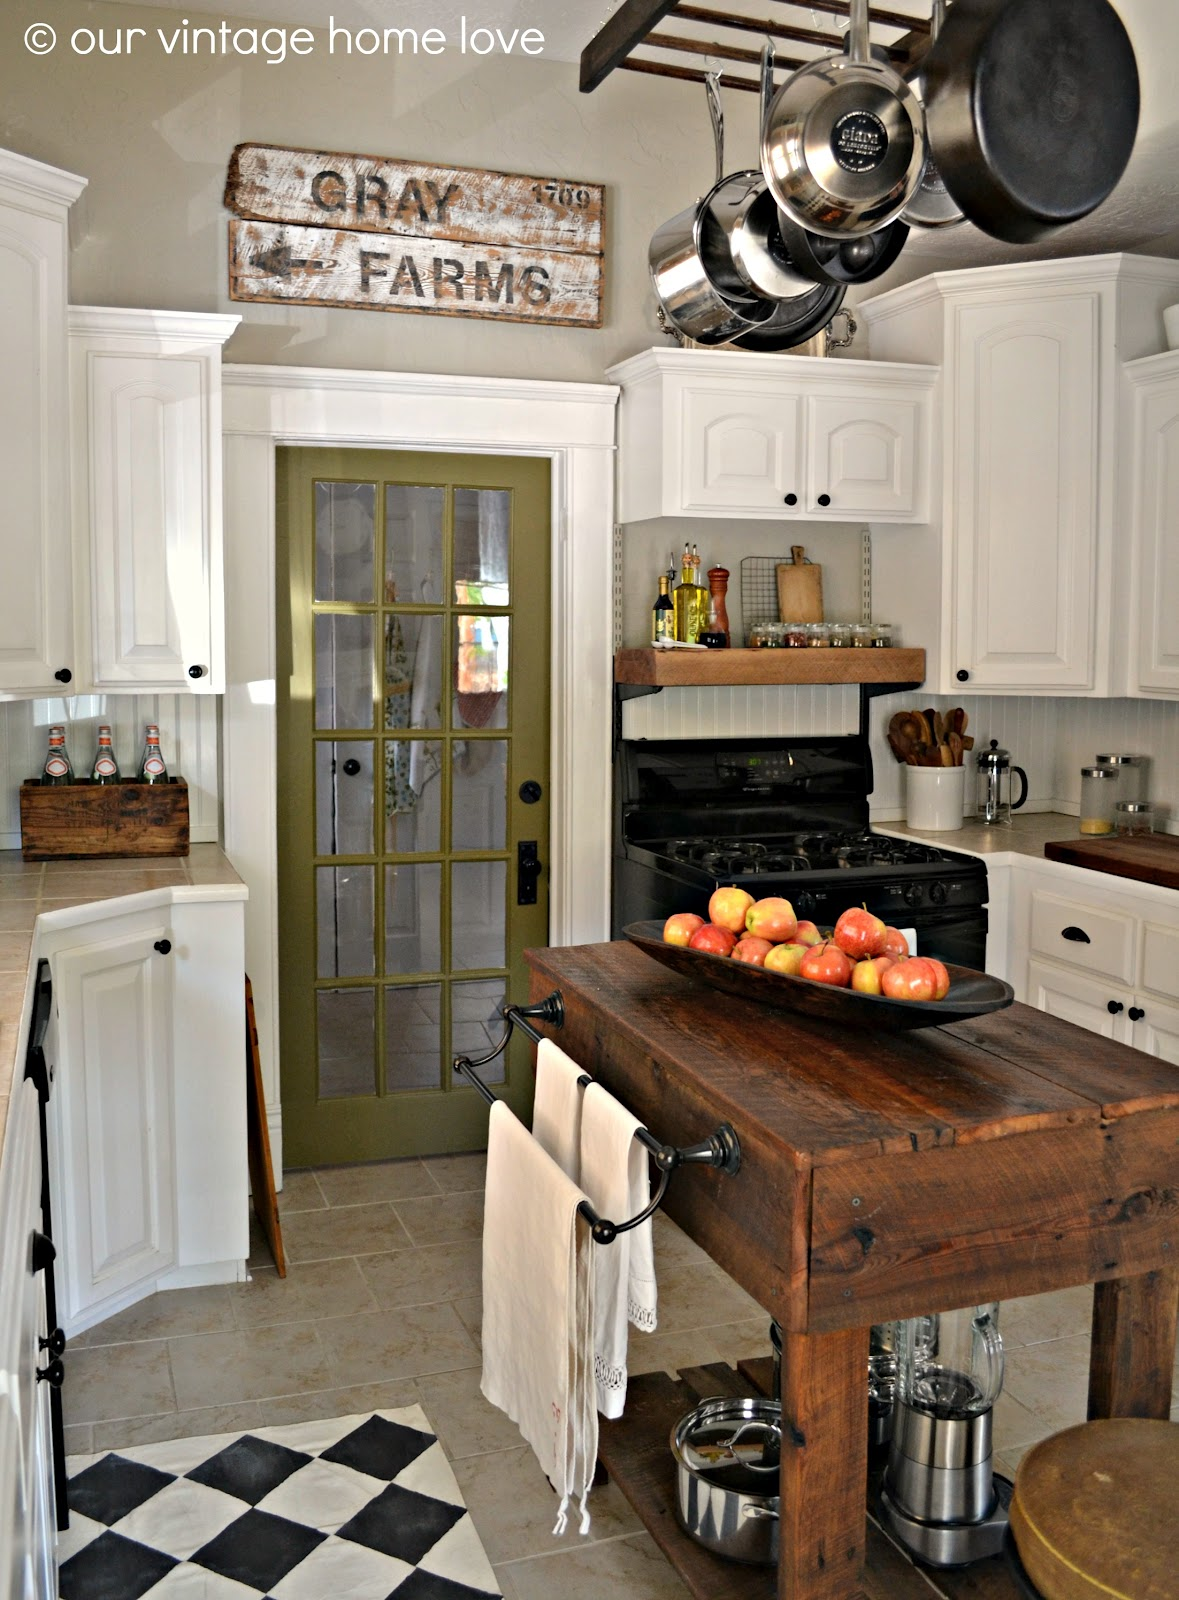 16 rustic country kitchen design ideas homebnc - Get Small Farmhouse Kitchen Decor Images